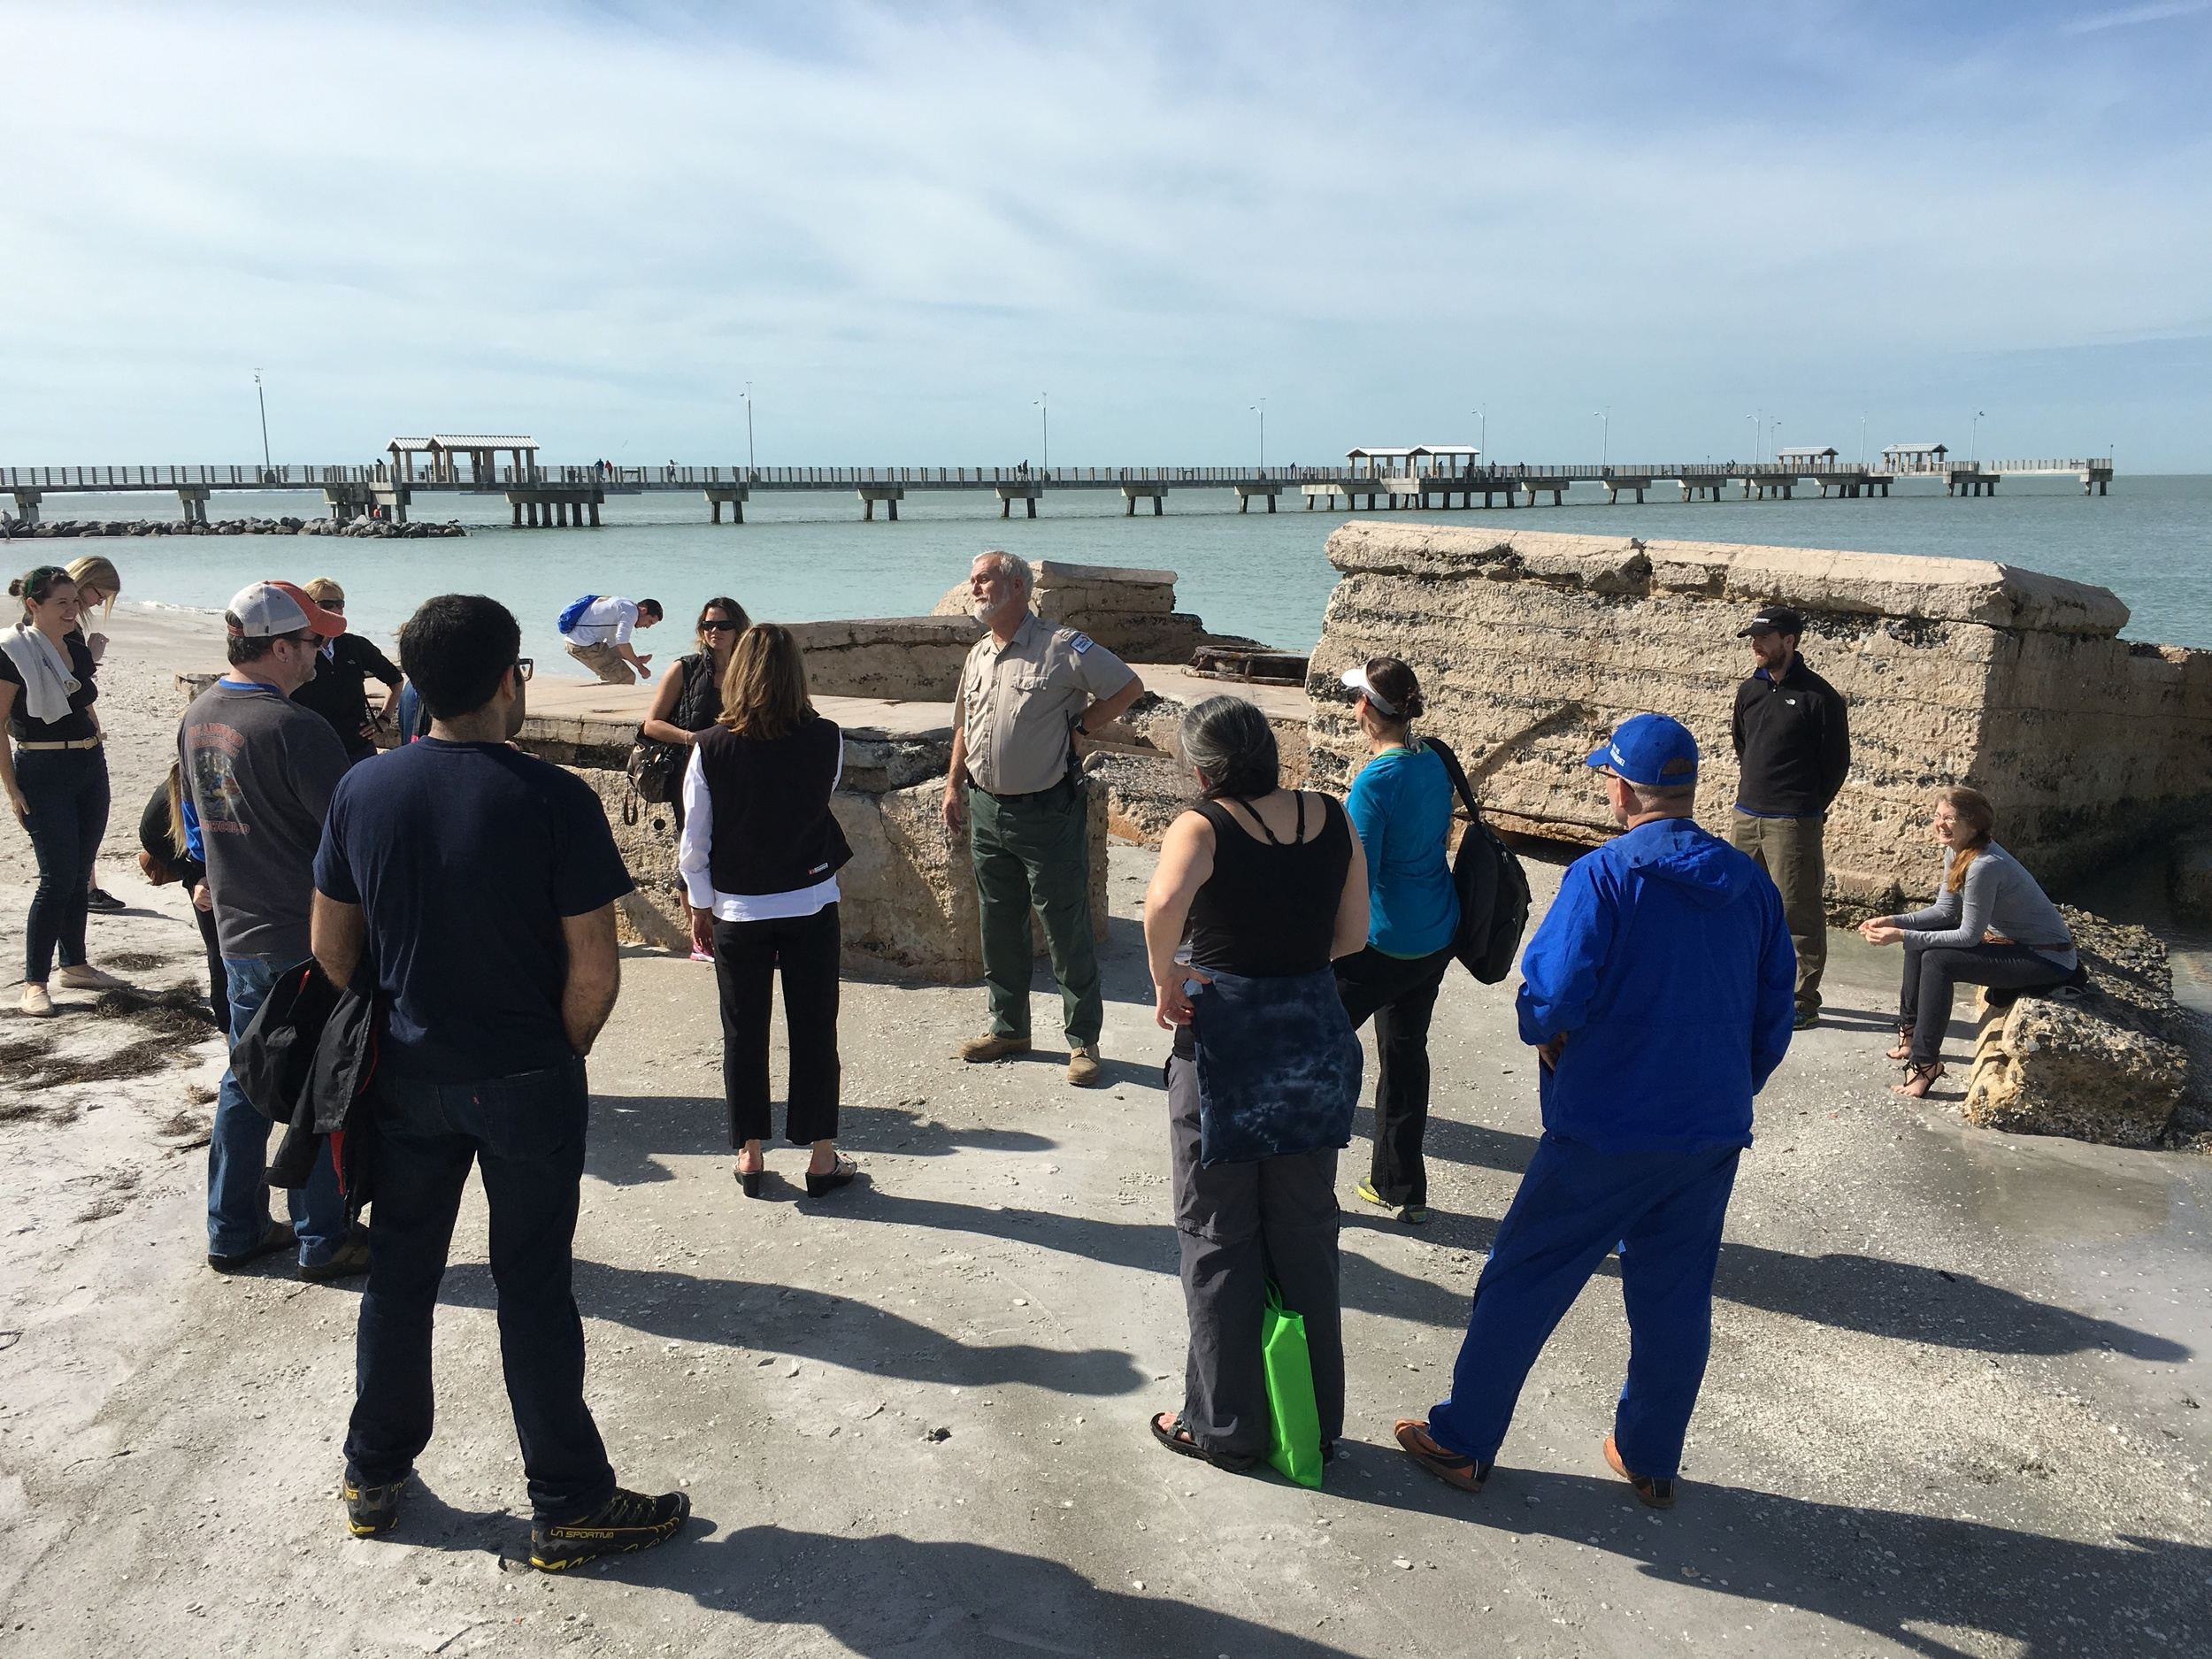 Visiting sustainable tourism locations in Tampa Bay